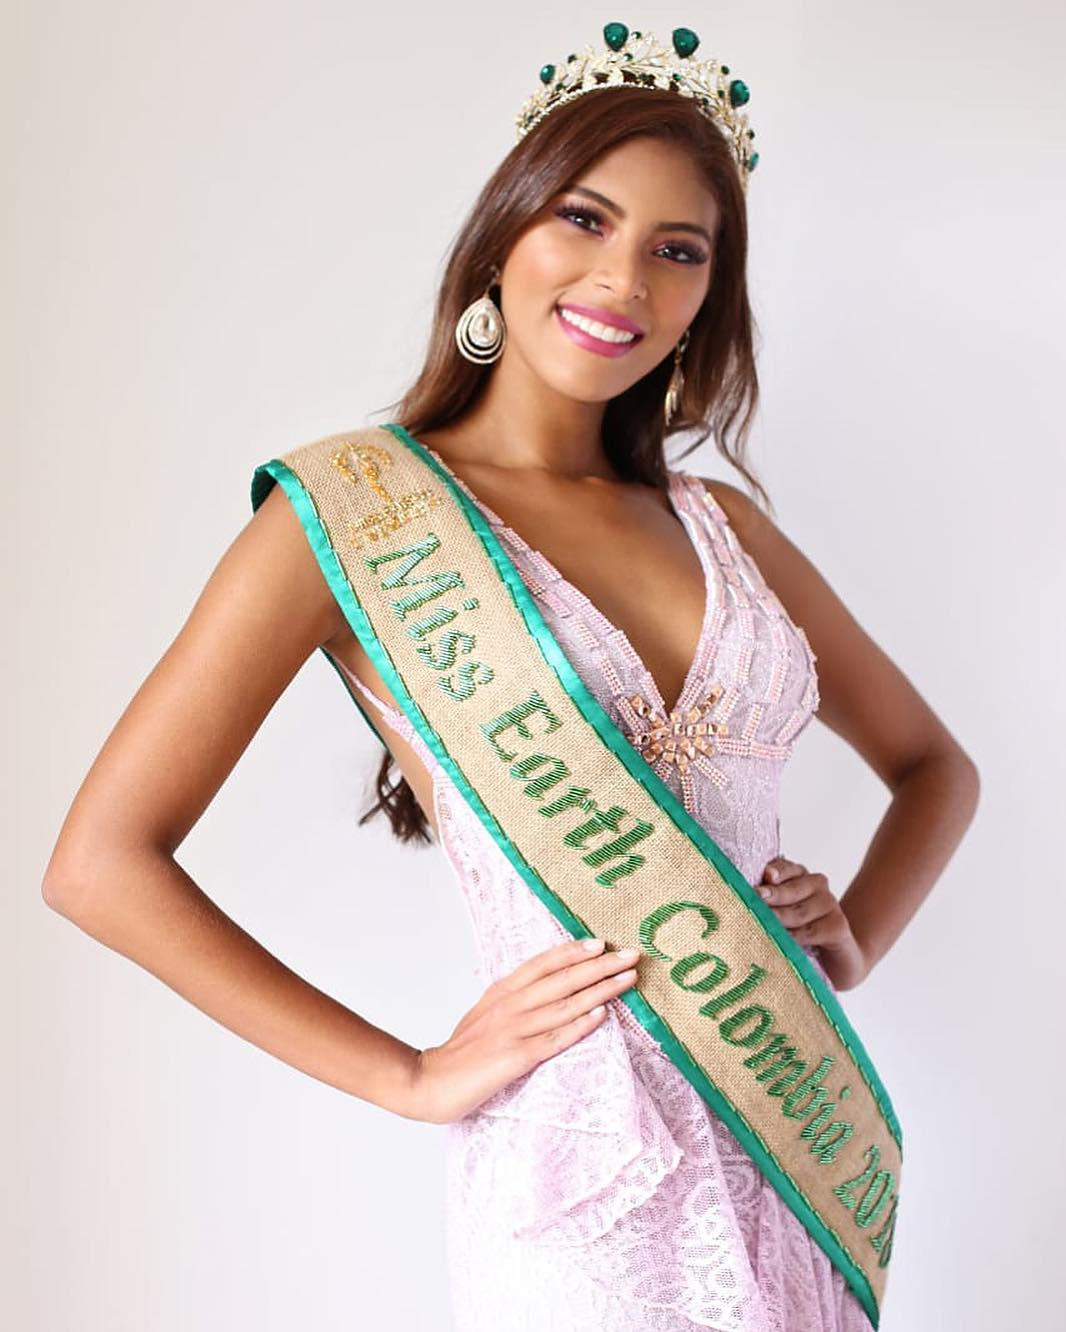 valeria ayos bossa, miss water earth 2018. 39962010